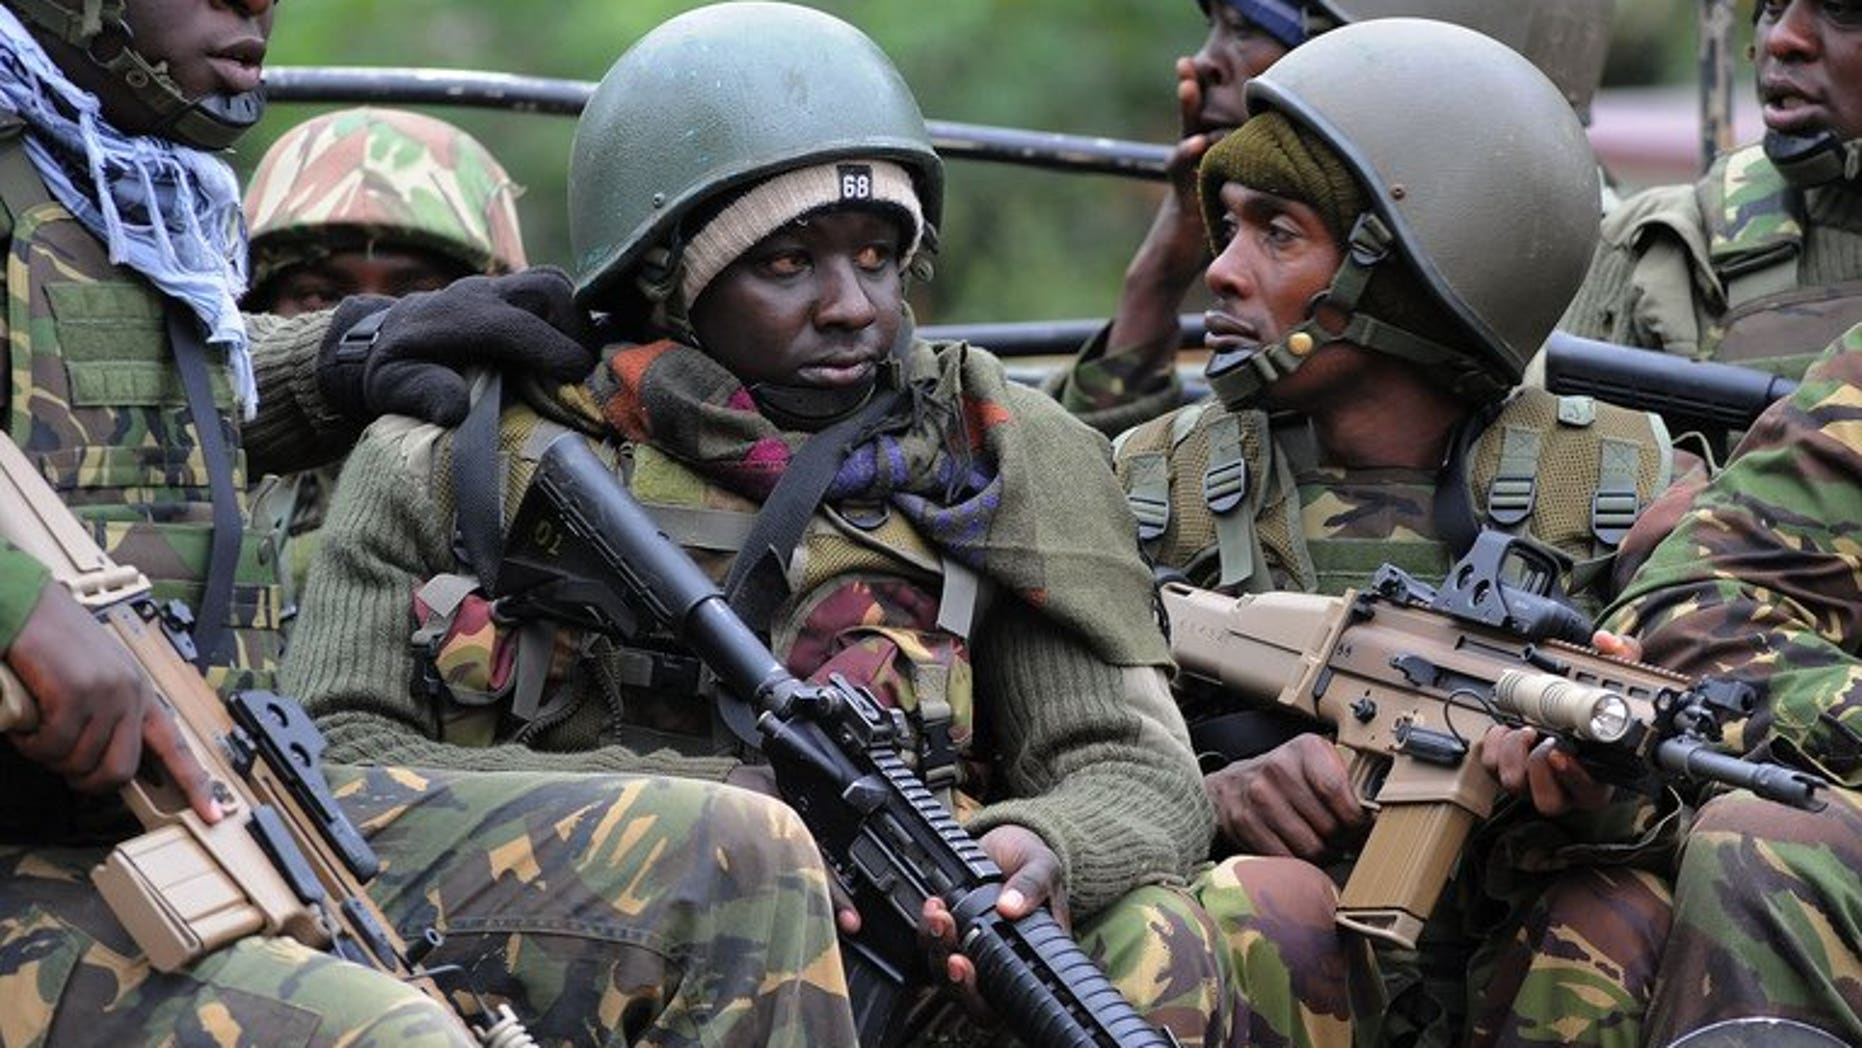 Kenya Defense Forces arrive on September 22, 2013 at the Westgate mall in Nairobi. Israel, which is said to have aided Kenya during the deadly attack on the mall, has long viewed East Africa as a region of major strategic and economic importance.